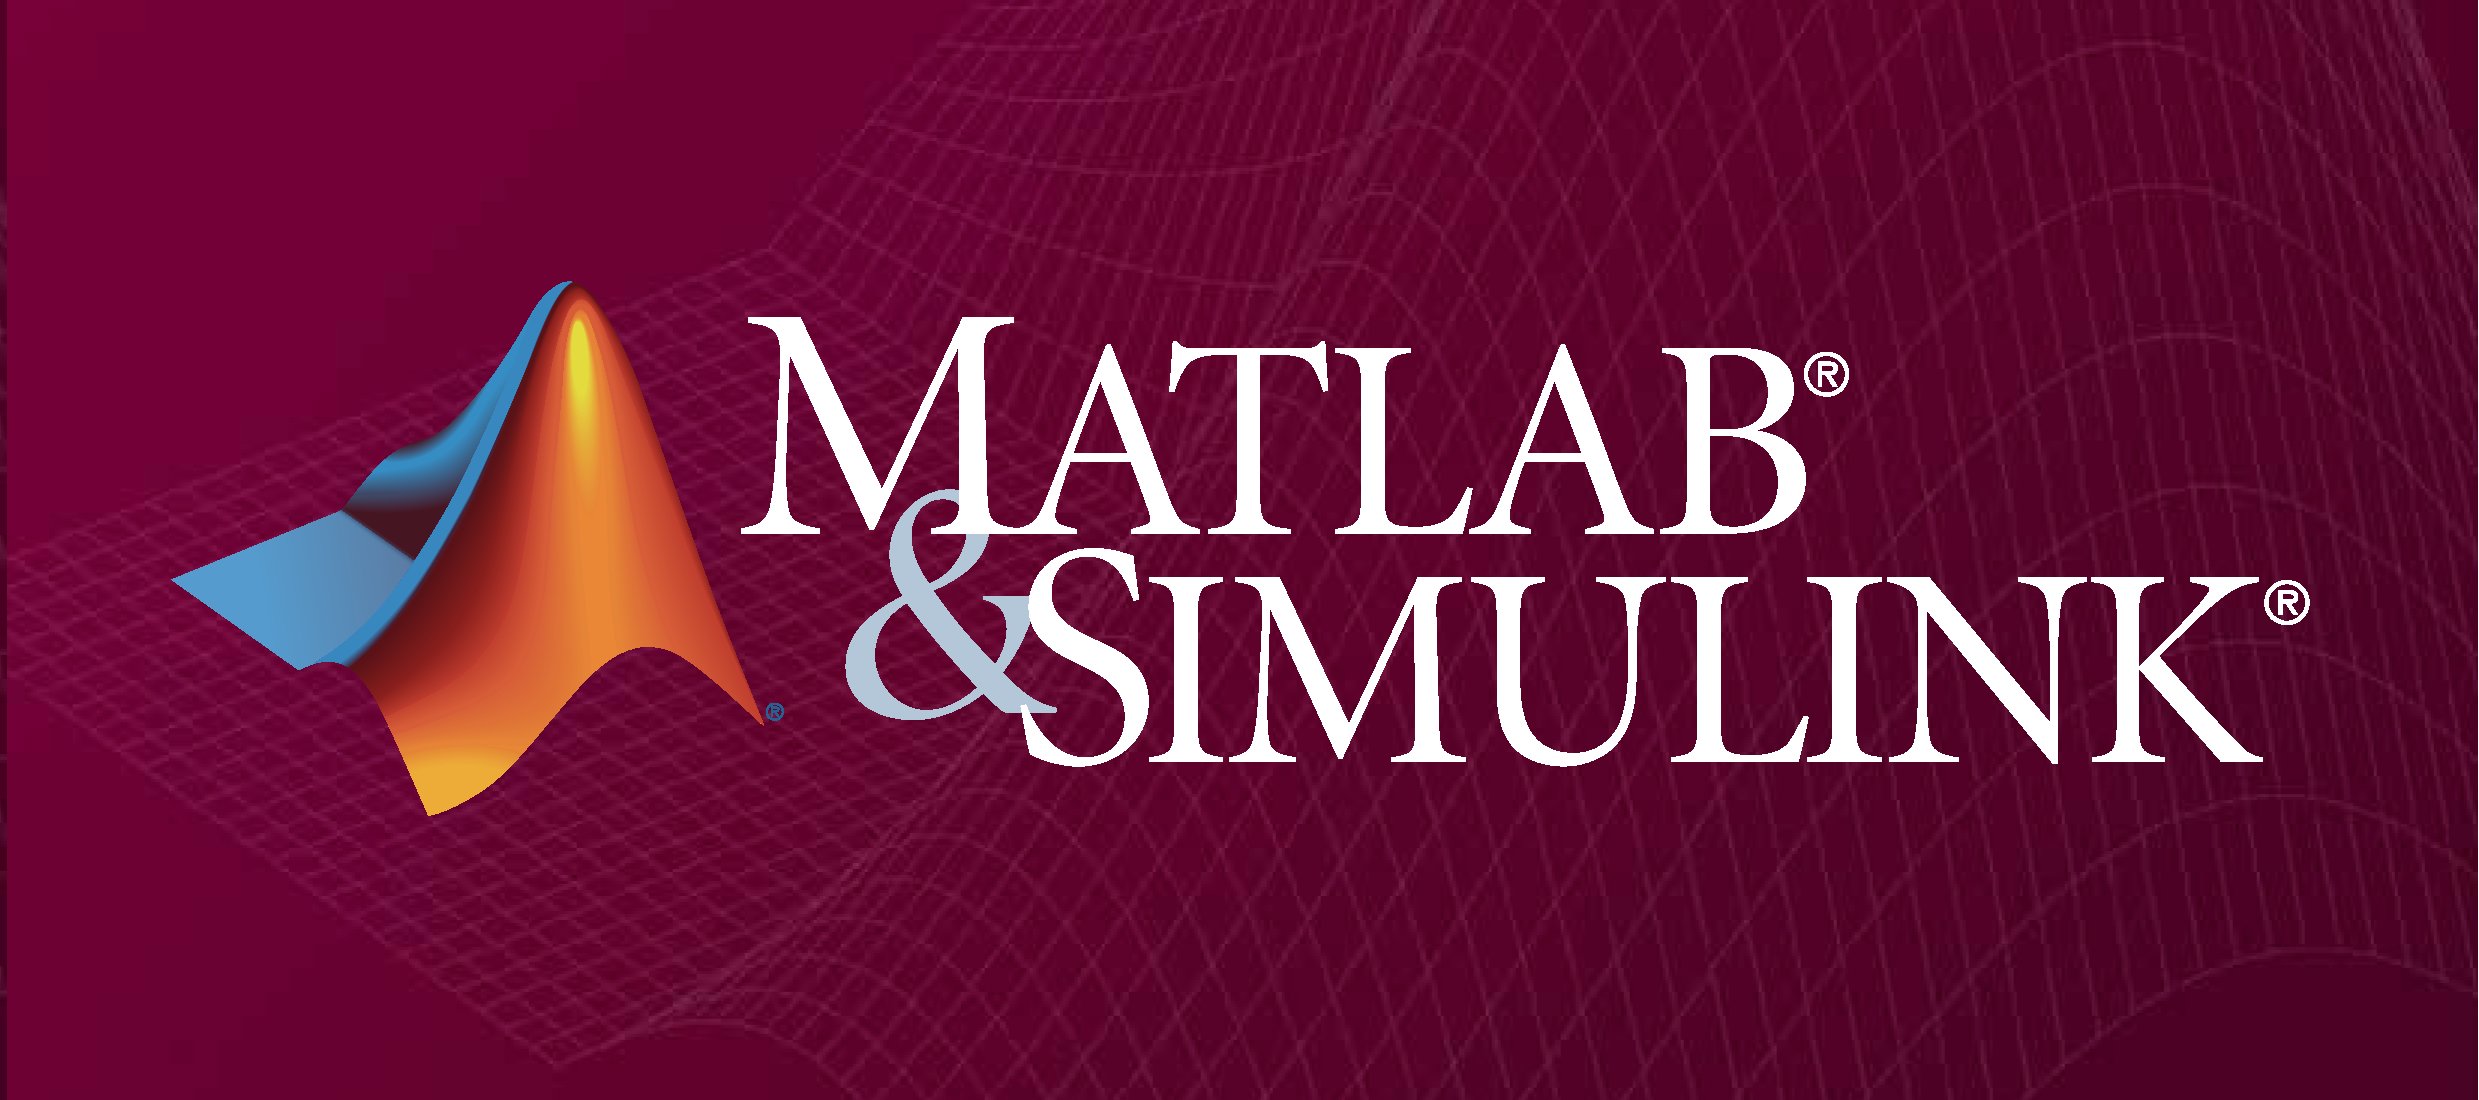 Matlab Chula Campus License - Faculty of Engineering